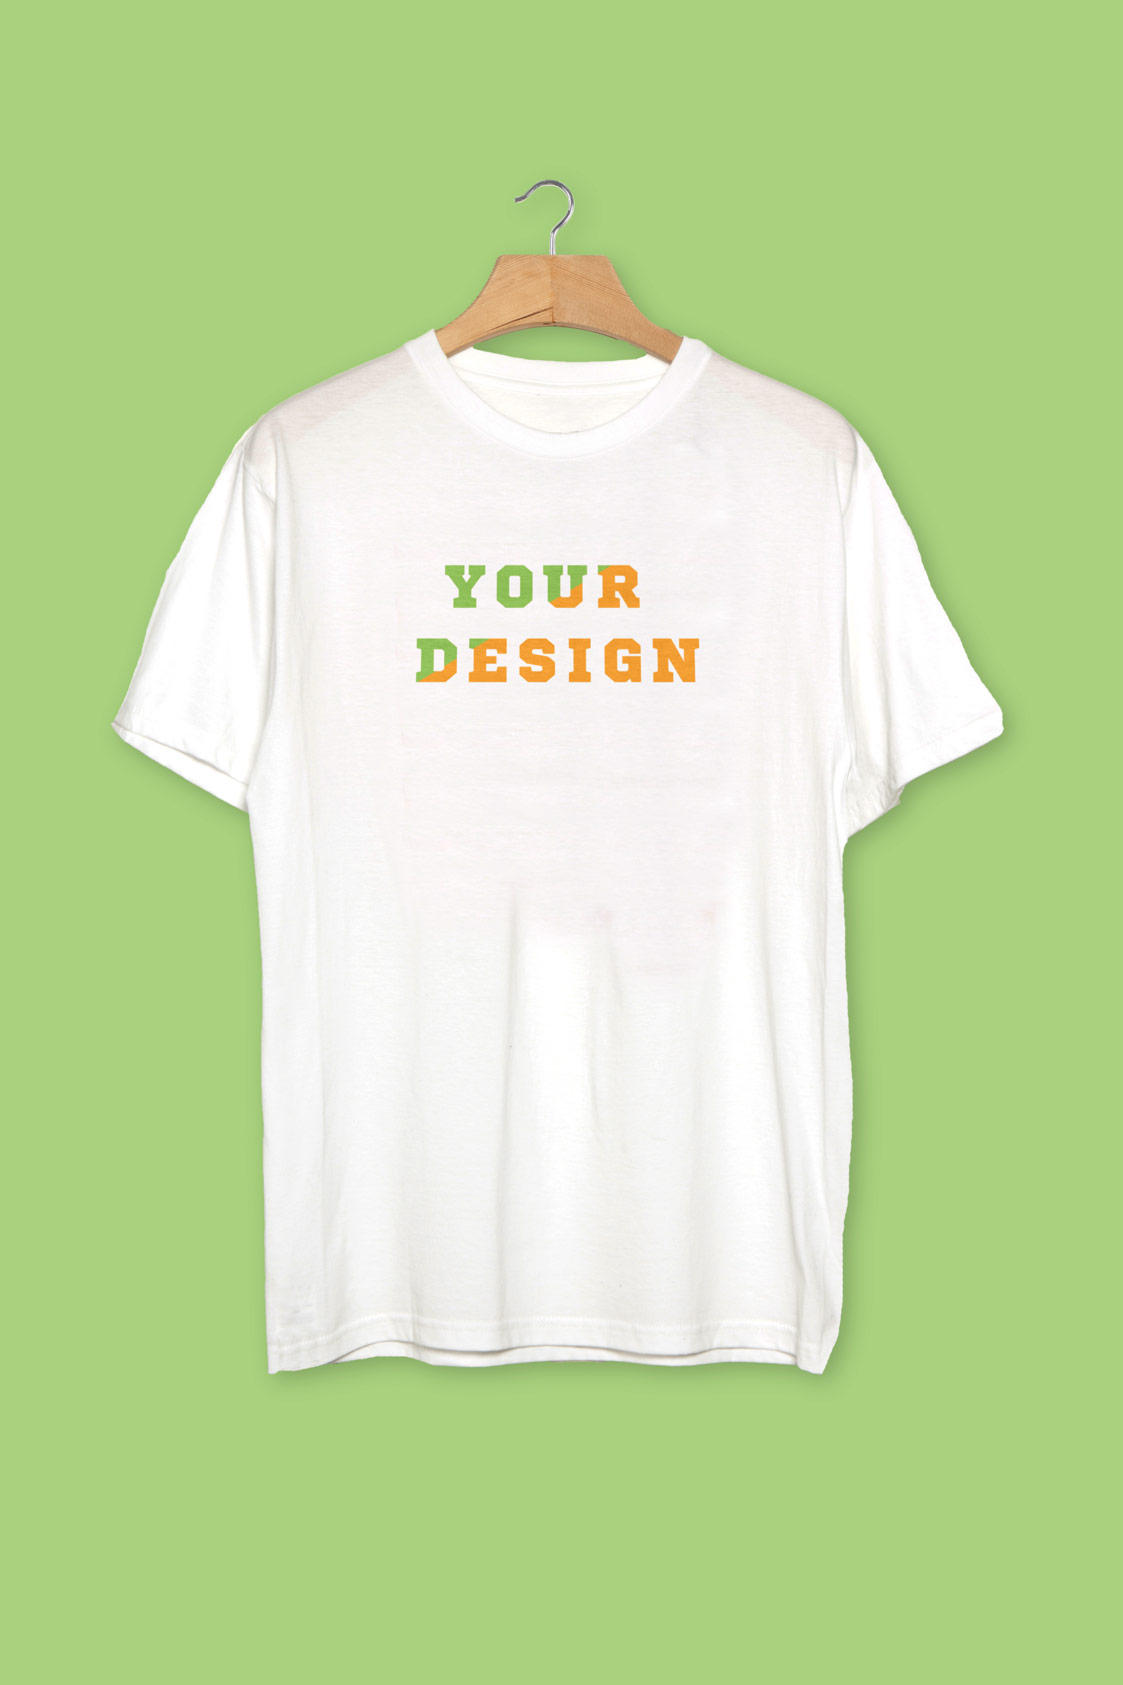 Realistic t shirt psd mockup template for White t shirt mockup